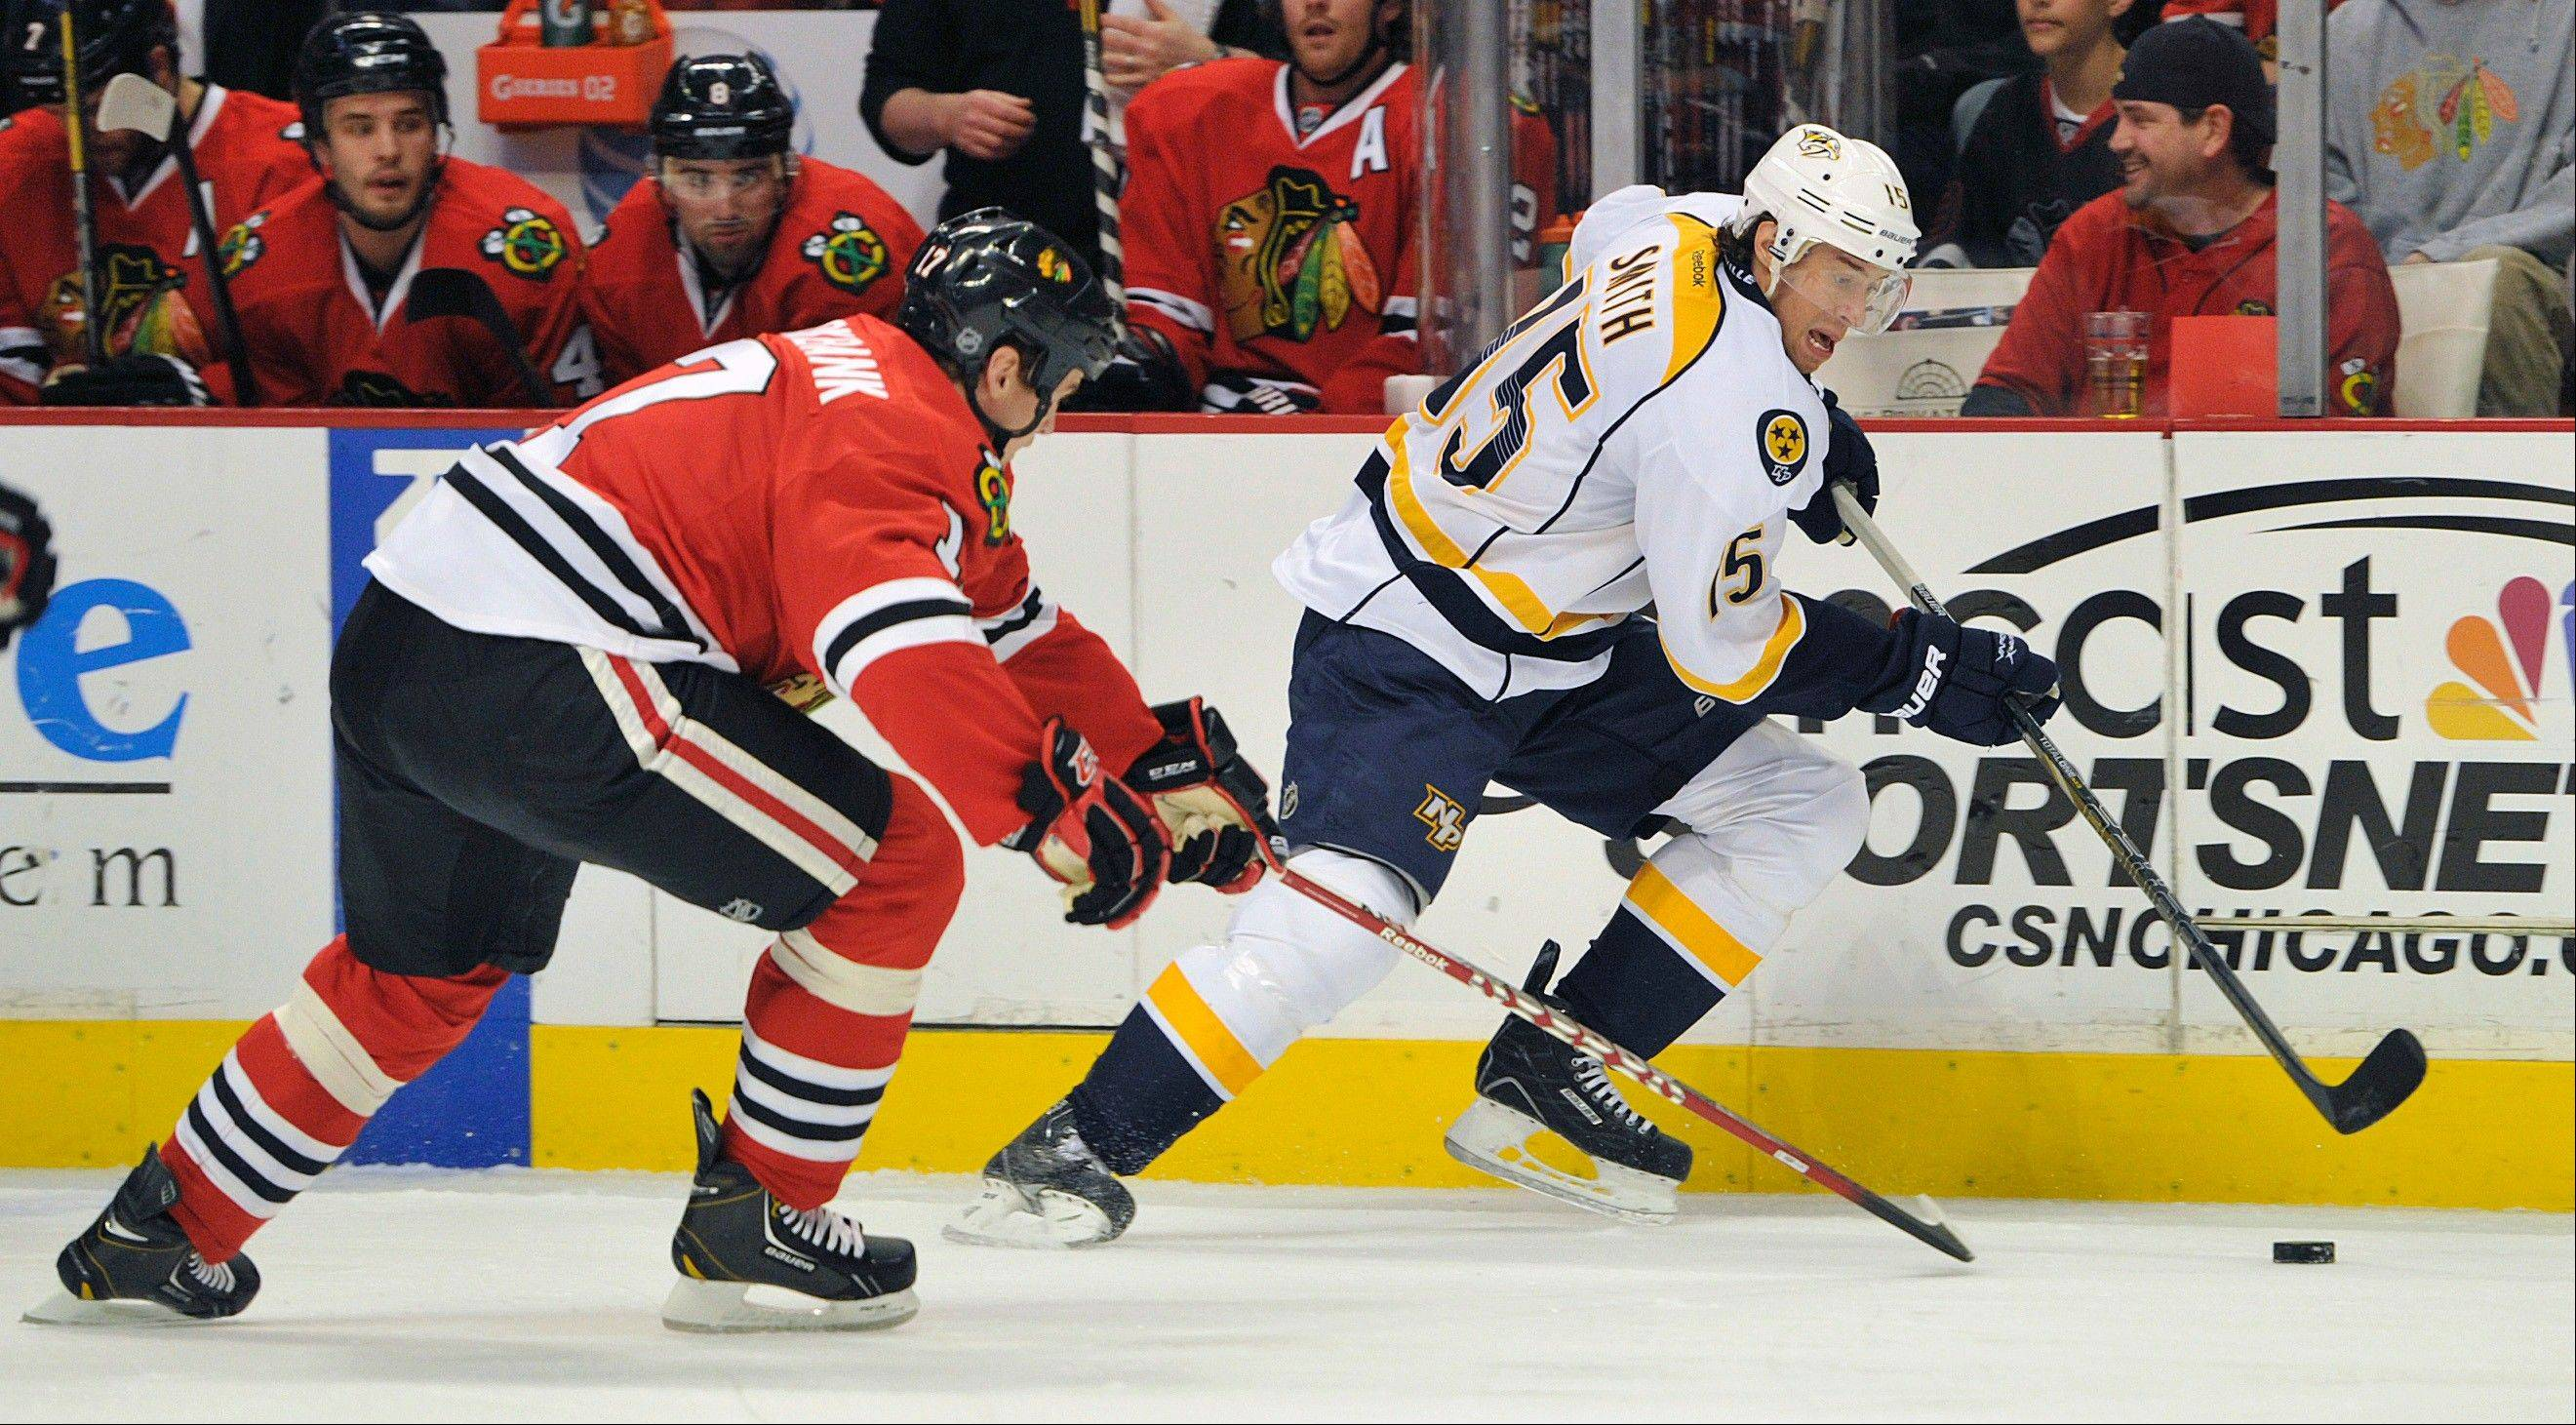 Chicago Blackhawks' Brent Seabrook, left, and Nashville Predators' Craig Smith (15) fight for the puck during the first period of an NHL hockey game Friday, April 19, 2013, in Chicago.